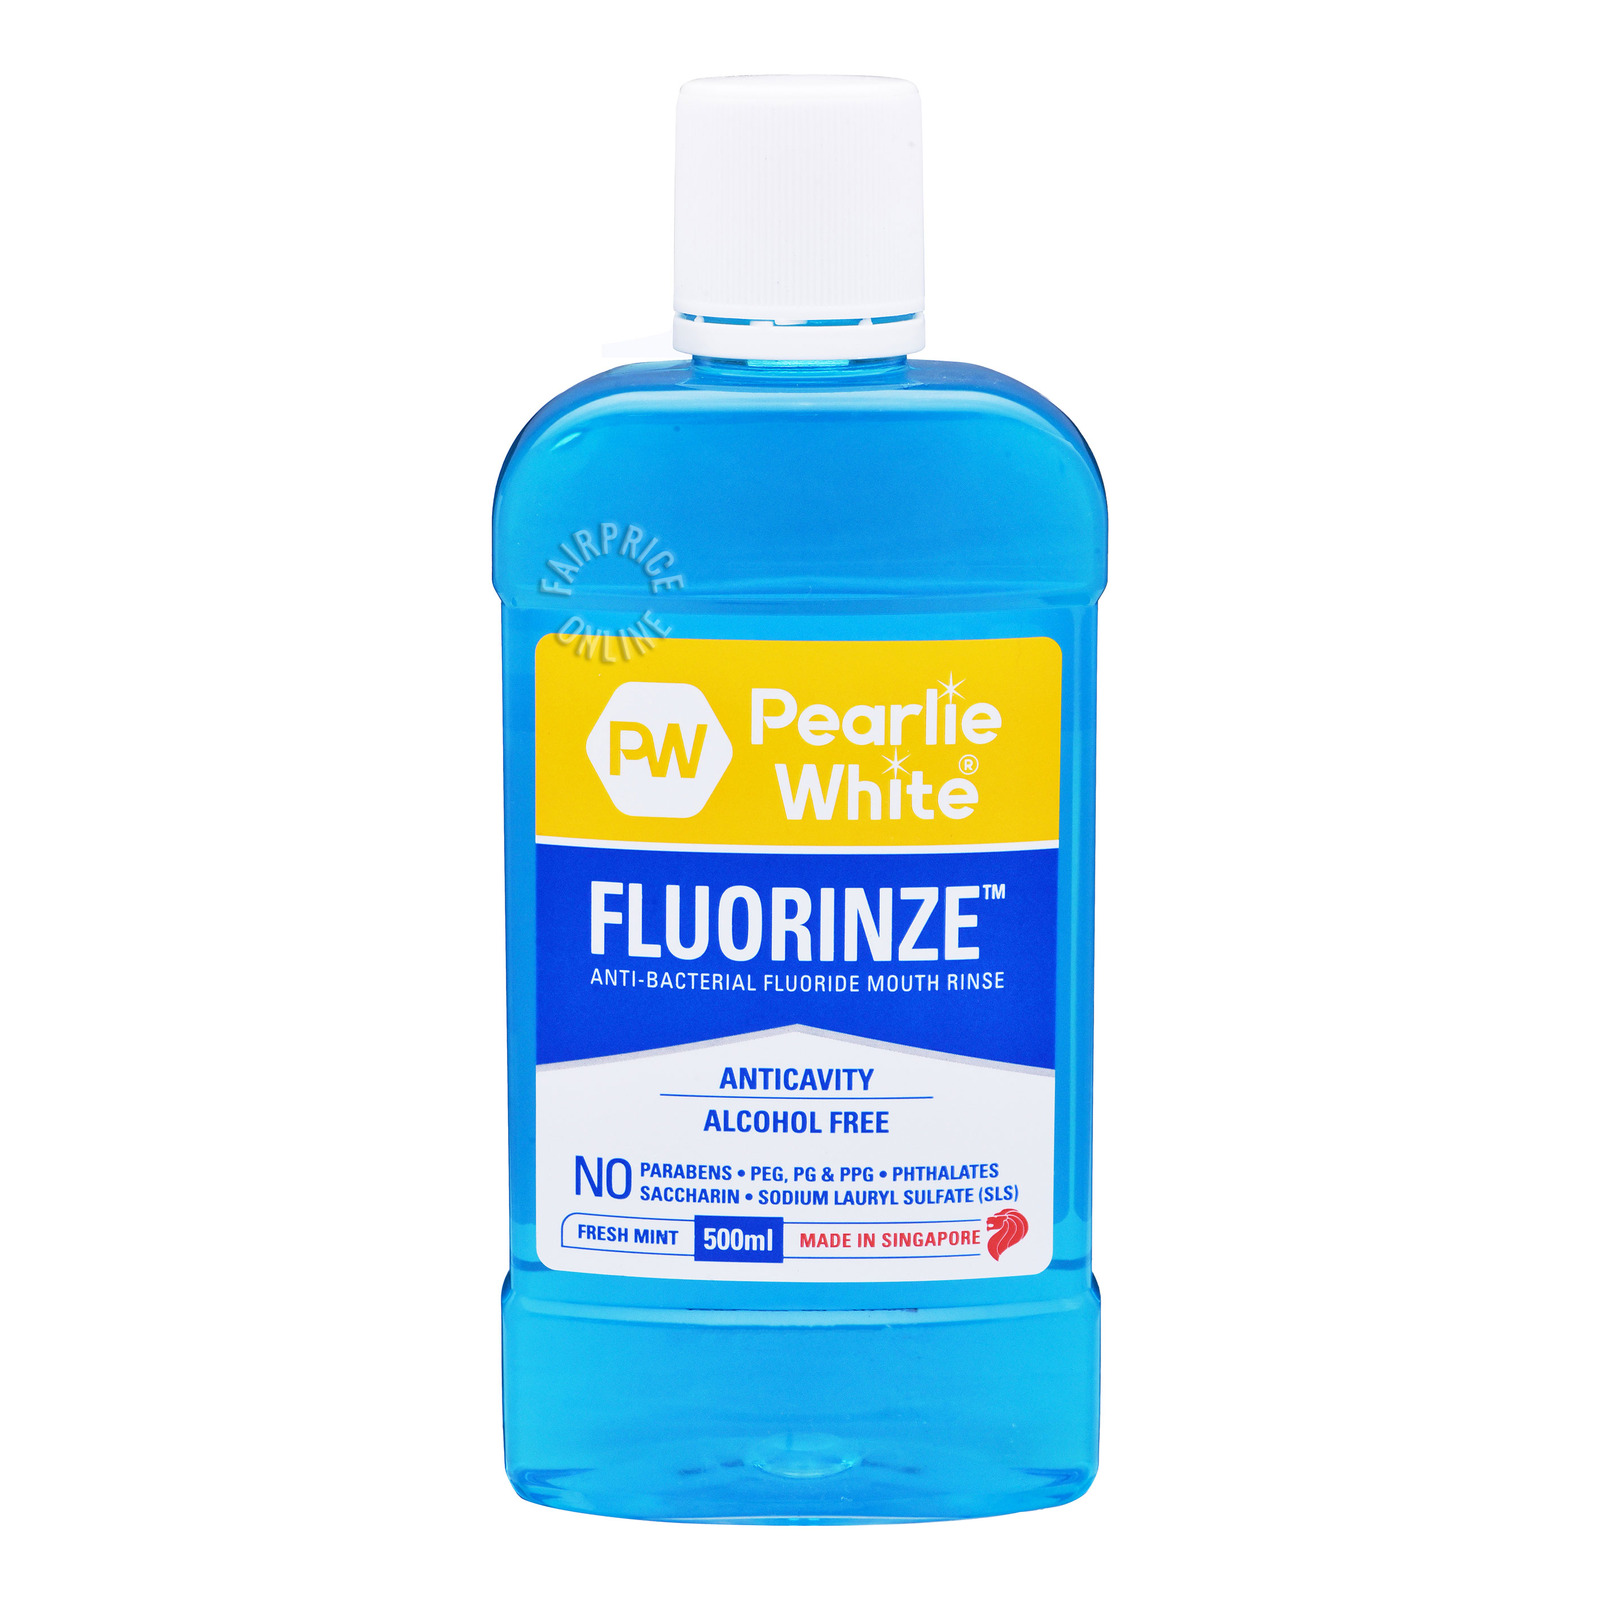 Pearlie White Fluoride Mouth Rinse - Mint